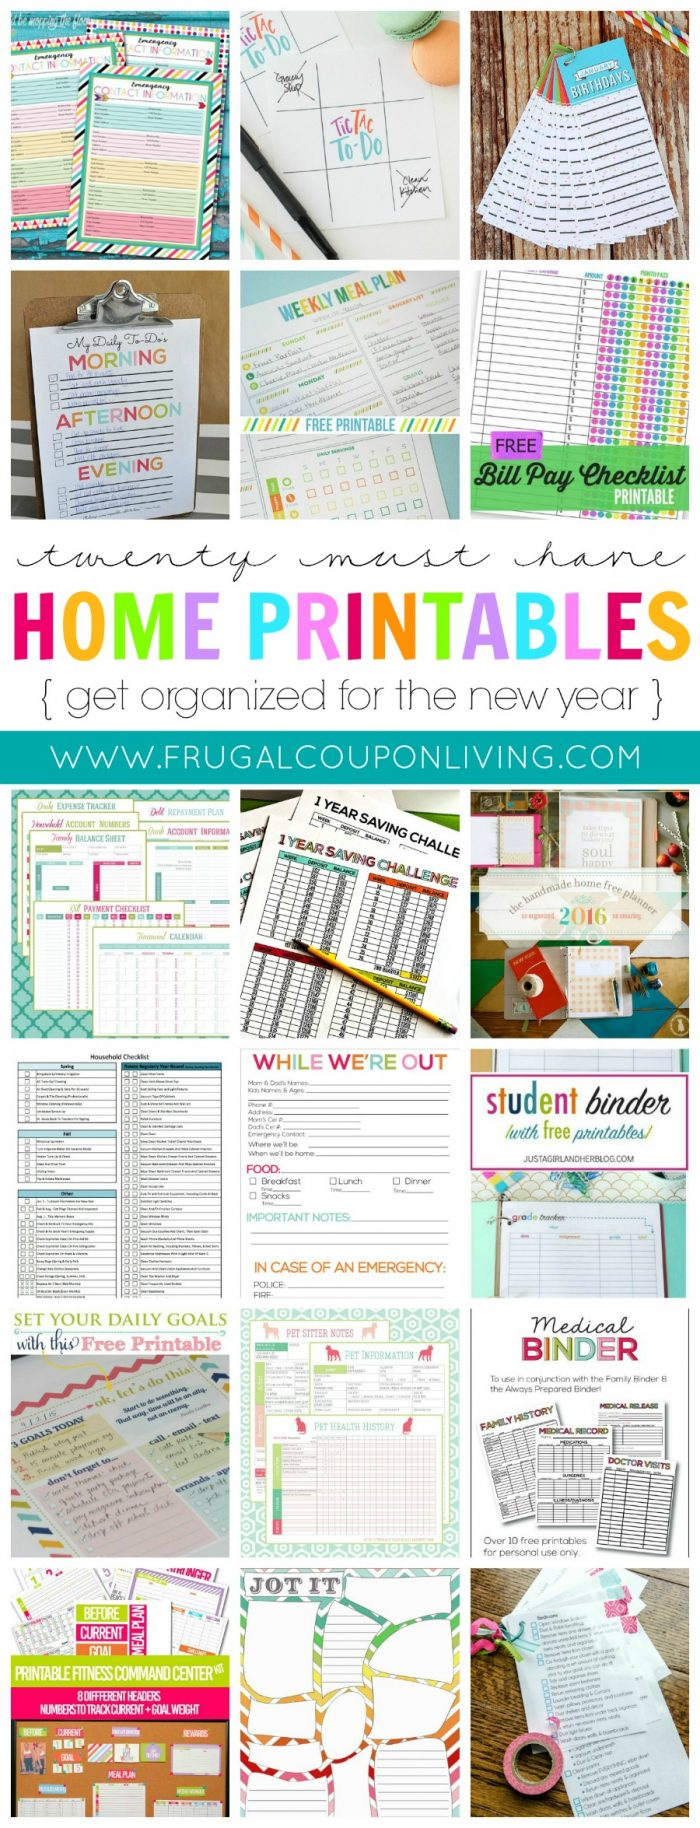 New Years FREE Home Printables on Frugal Coupon Living